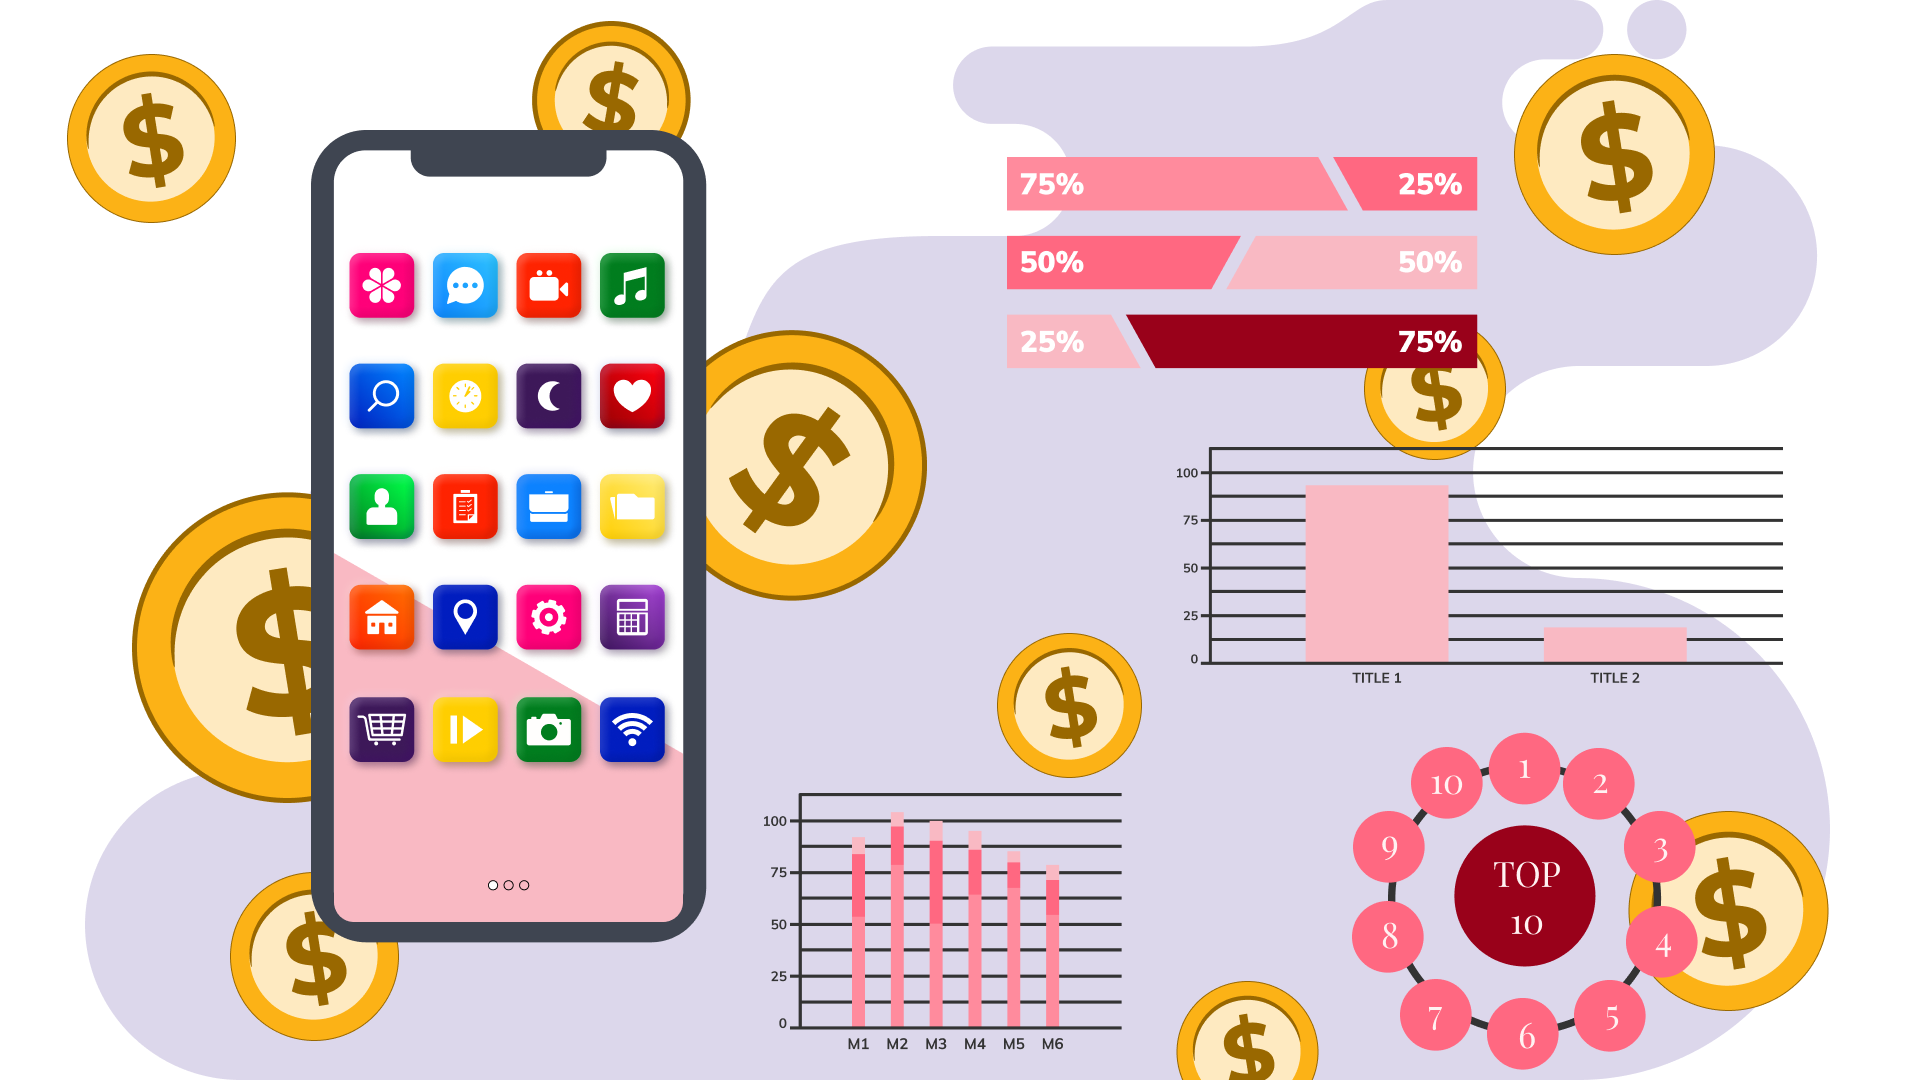 Top 10 Mobile App Monetization Trends